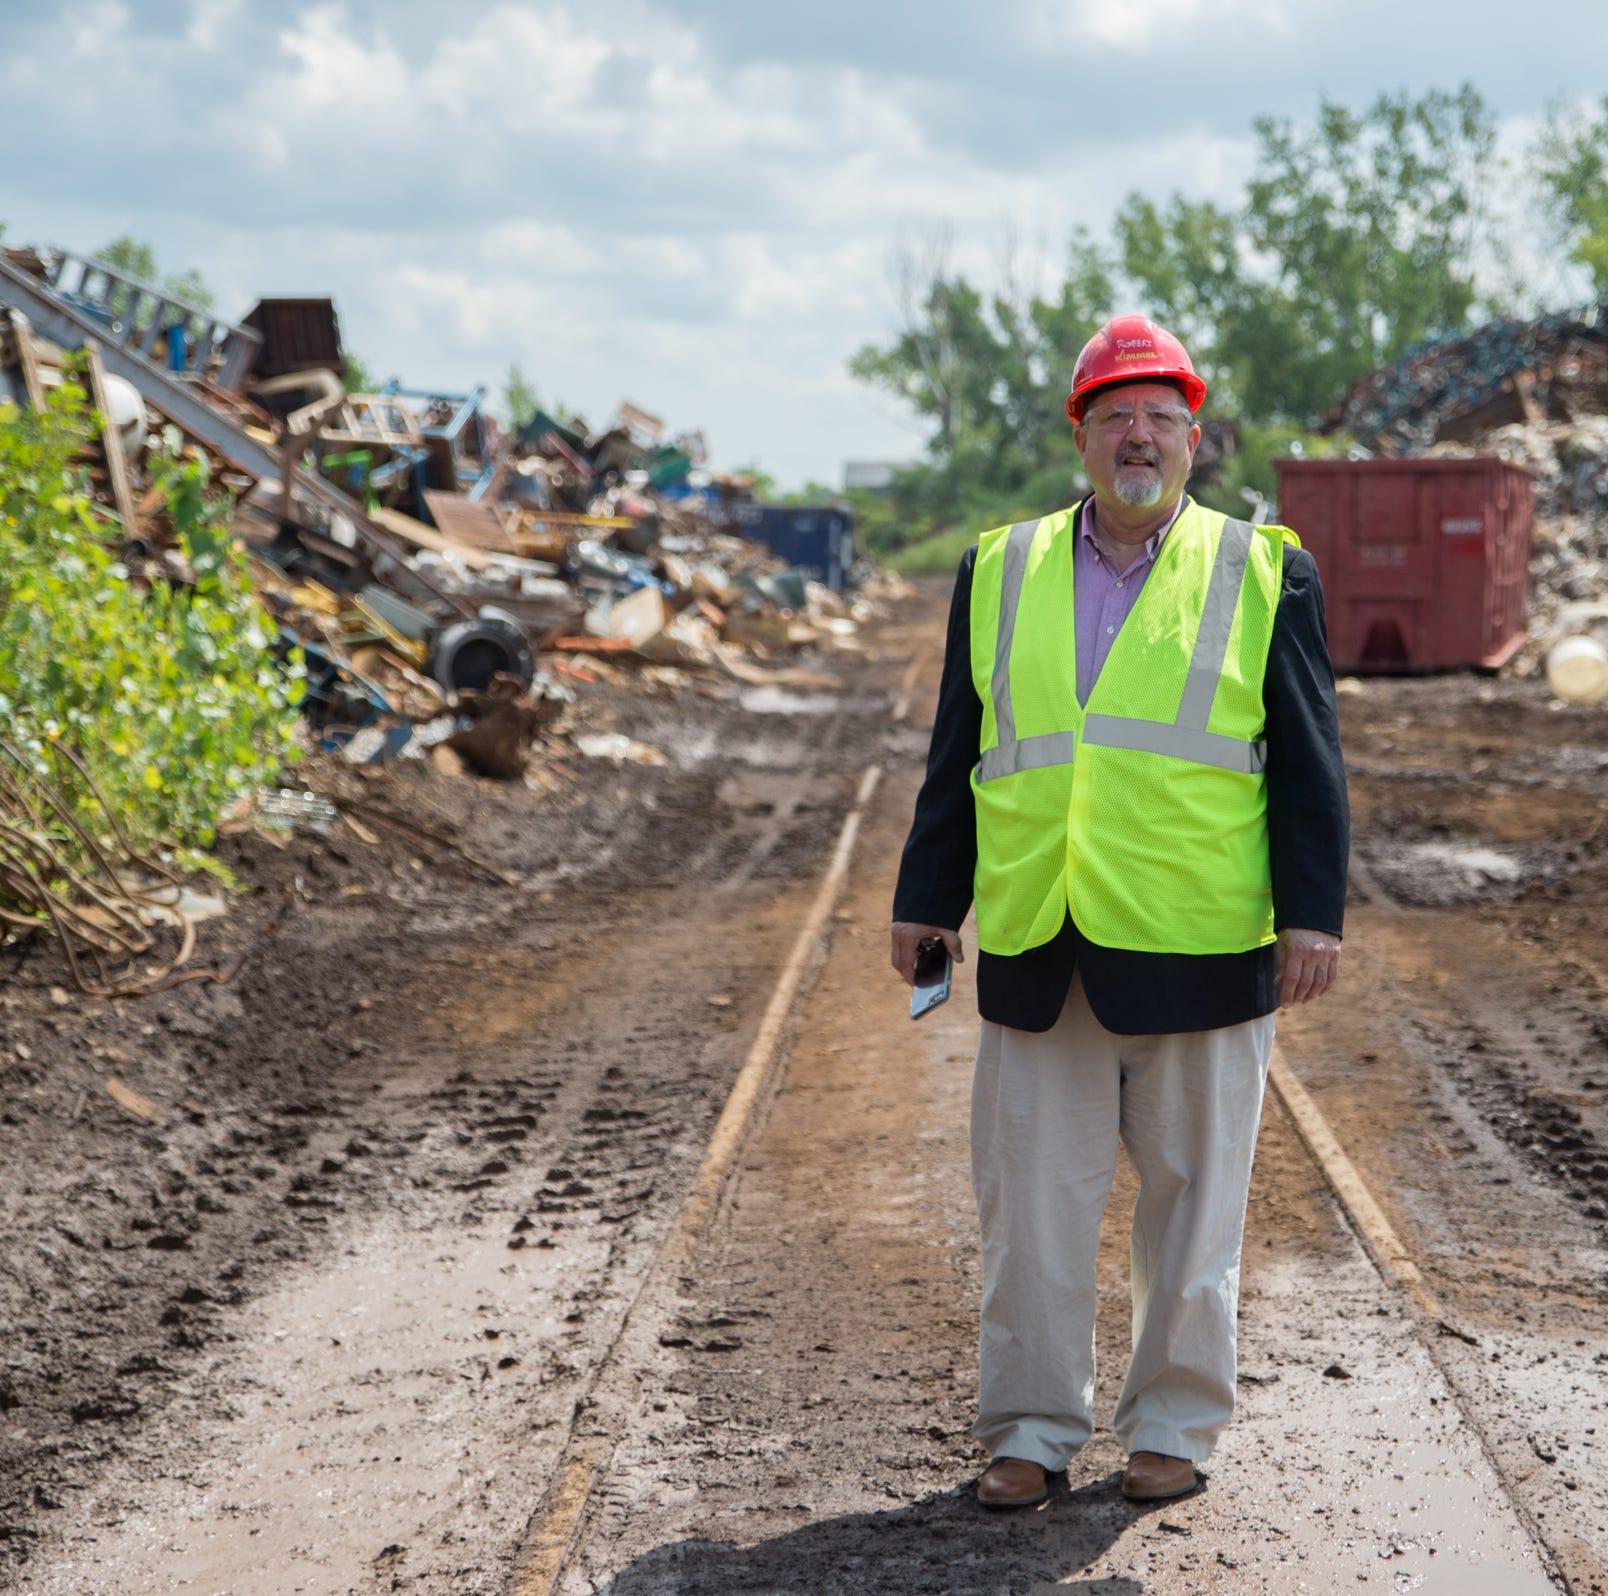 Trade war hits scrap yards in Michigan in ways you wouldn't expect